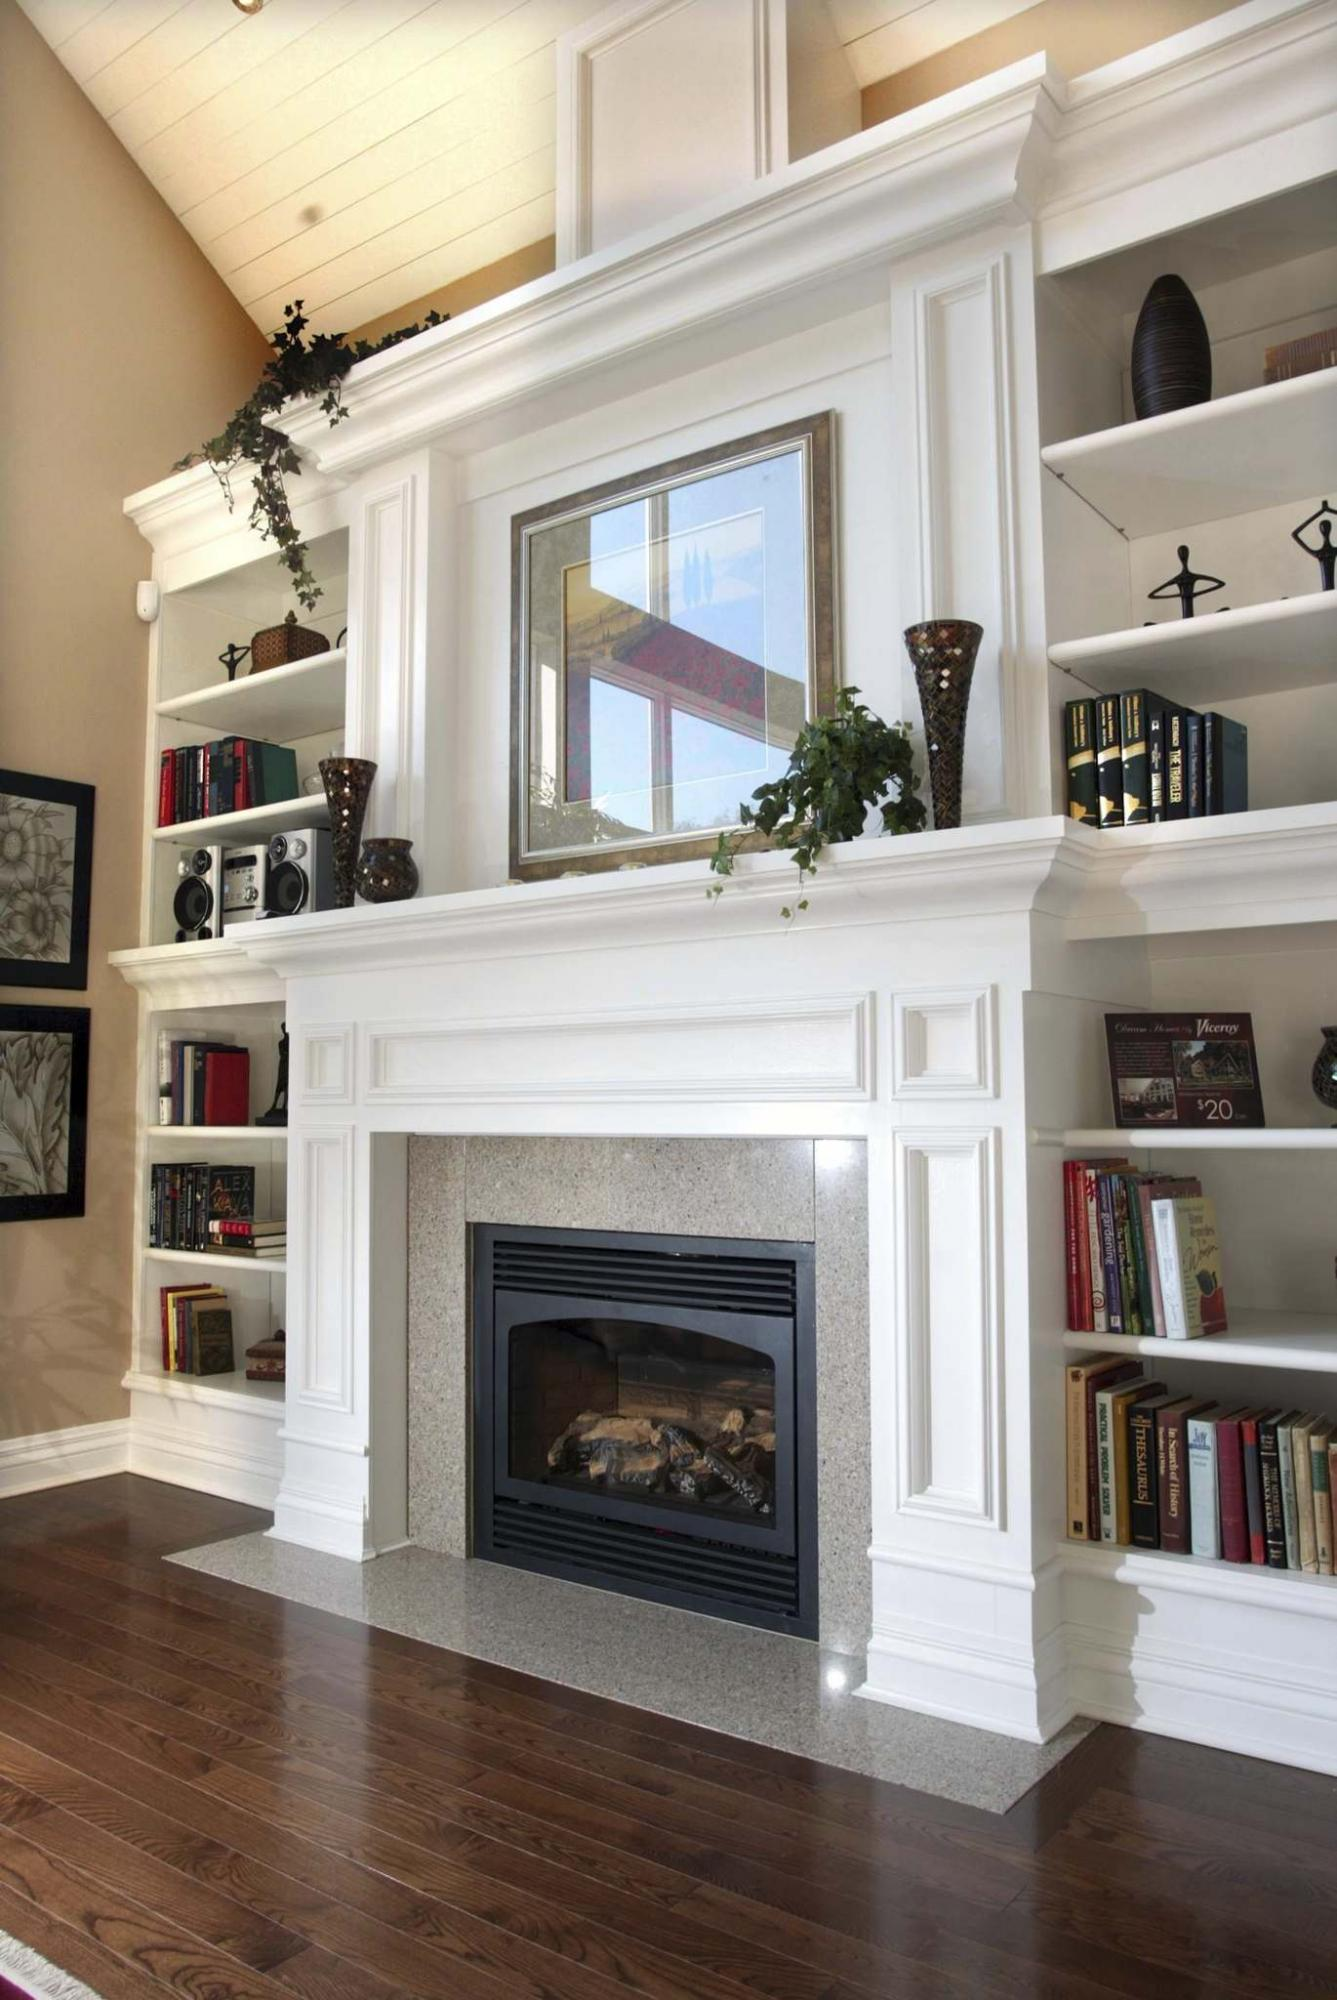 <p>BRUNO SCHLUMBERGER / OTTAWA CITIZEN FILES</p><p>A stunning focal wall with a fireplace and shelves painted a crisp white creates impressive results in this living room.</p>